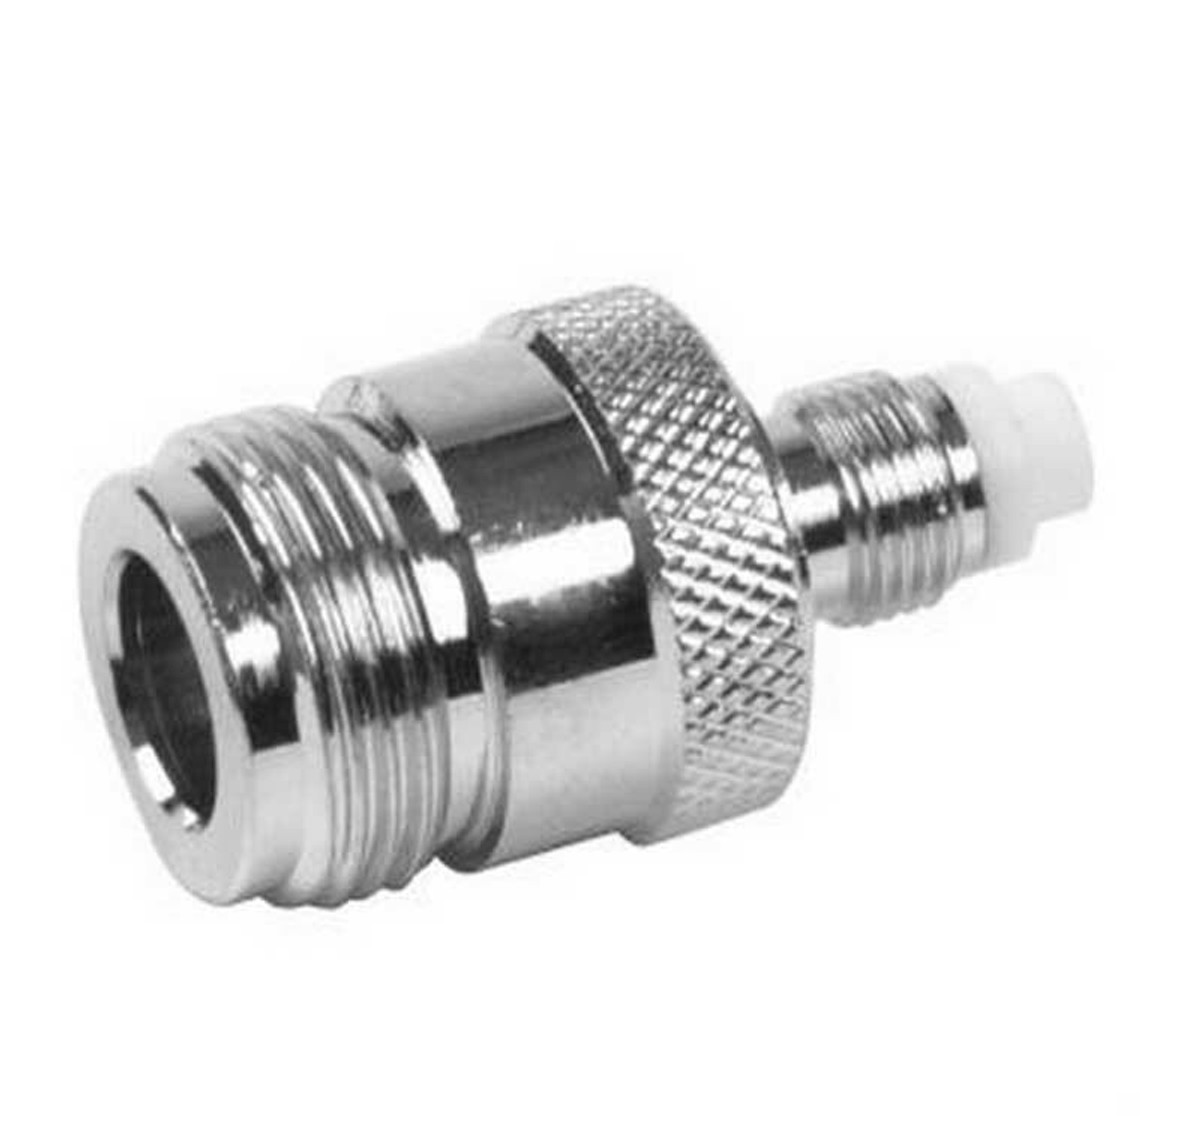 Wilson Electronics weBoost Wilson 971107 N-Female to FME-Female Connector